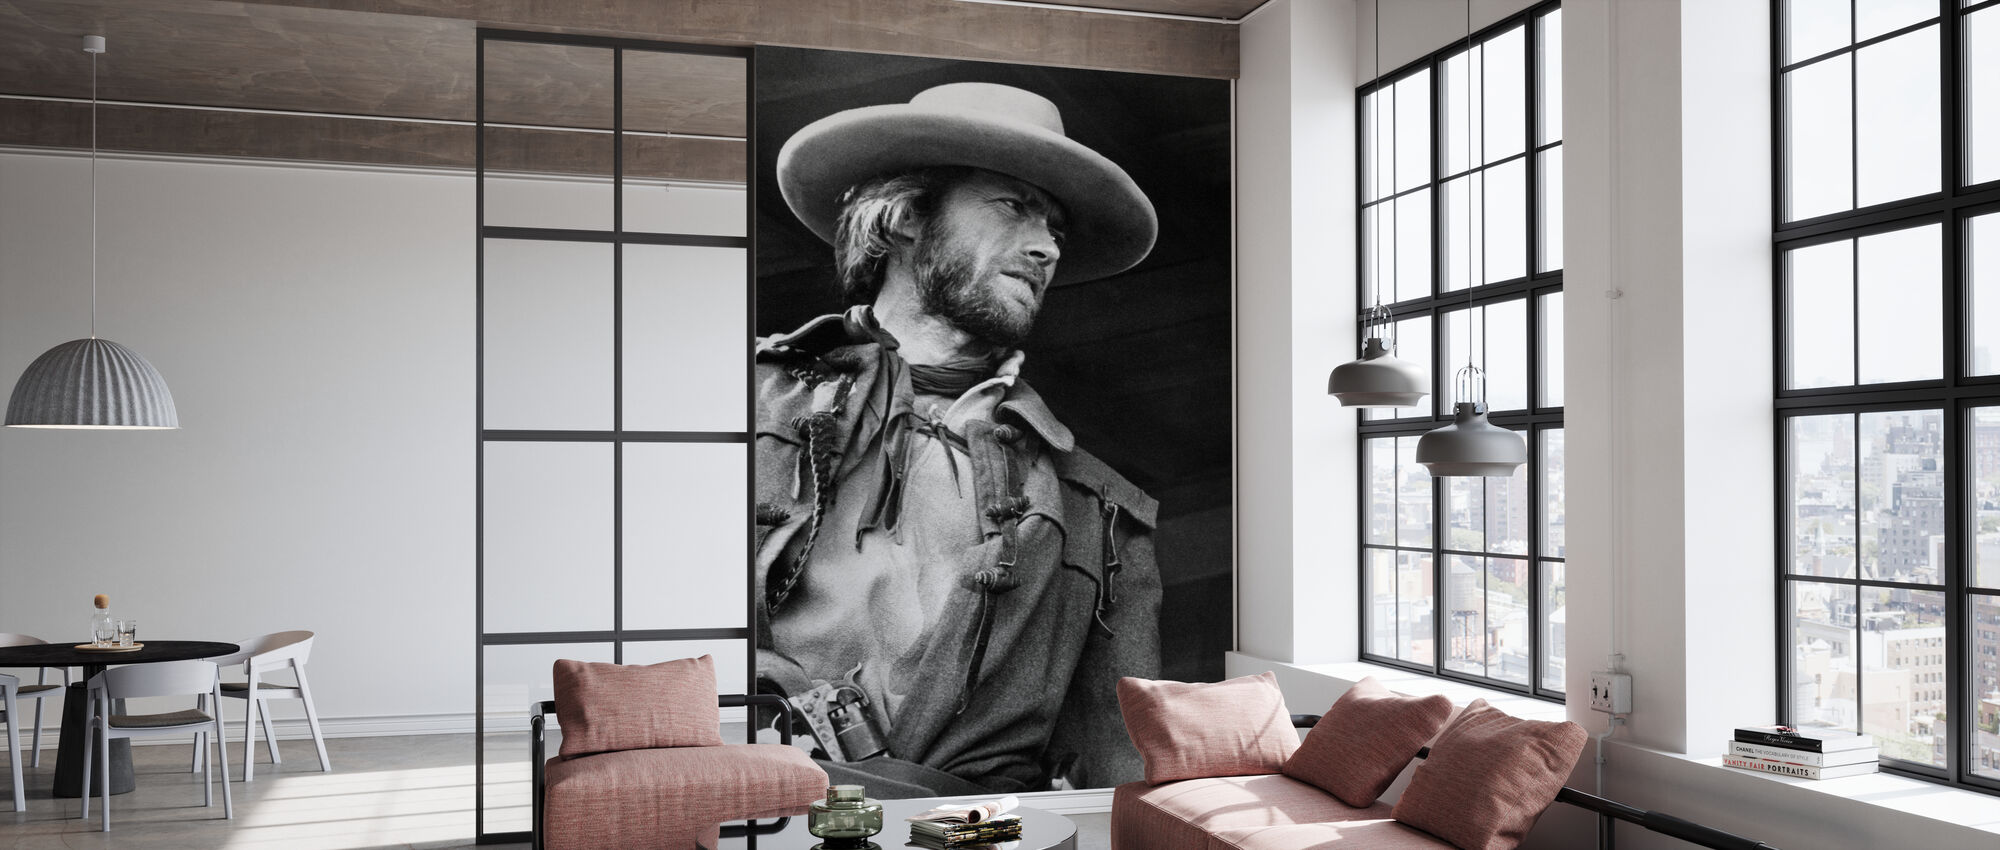 The Outlaw Josey Wales - Grey scale - Wallpaper - Office